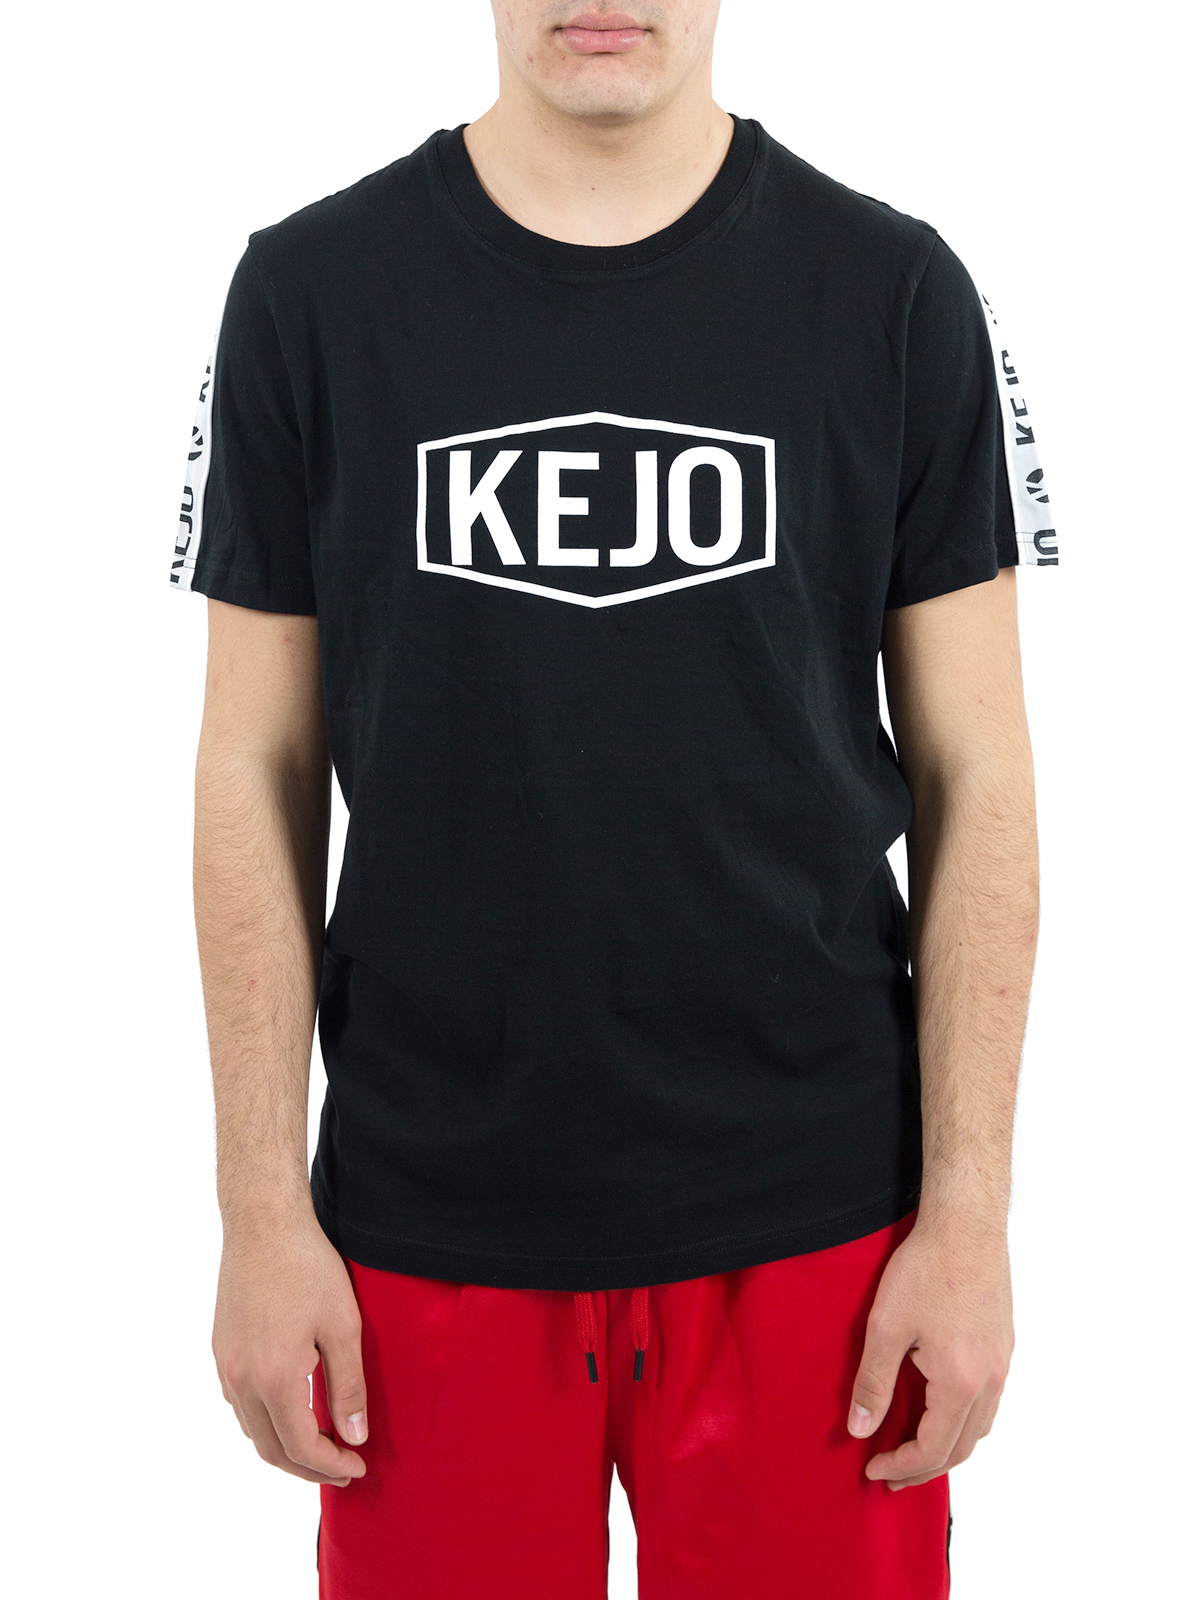 Kejo T-Shirt KS19 104M